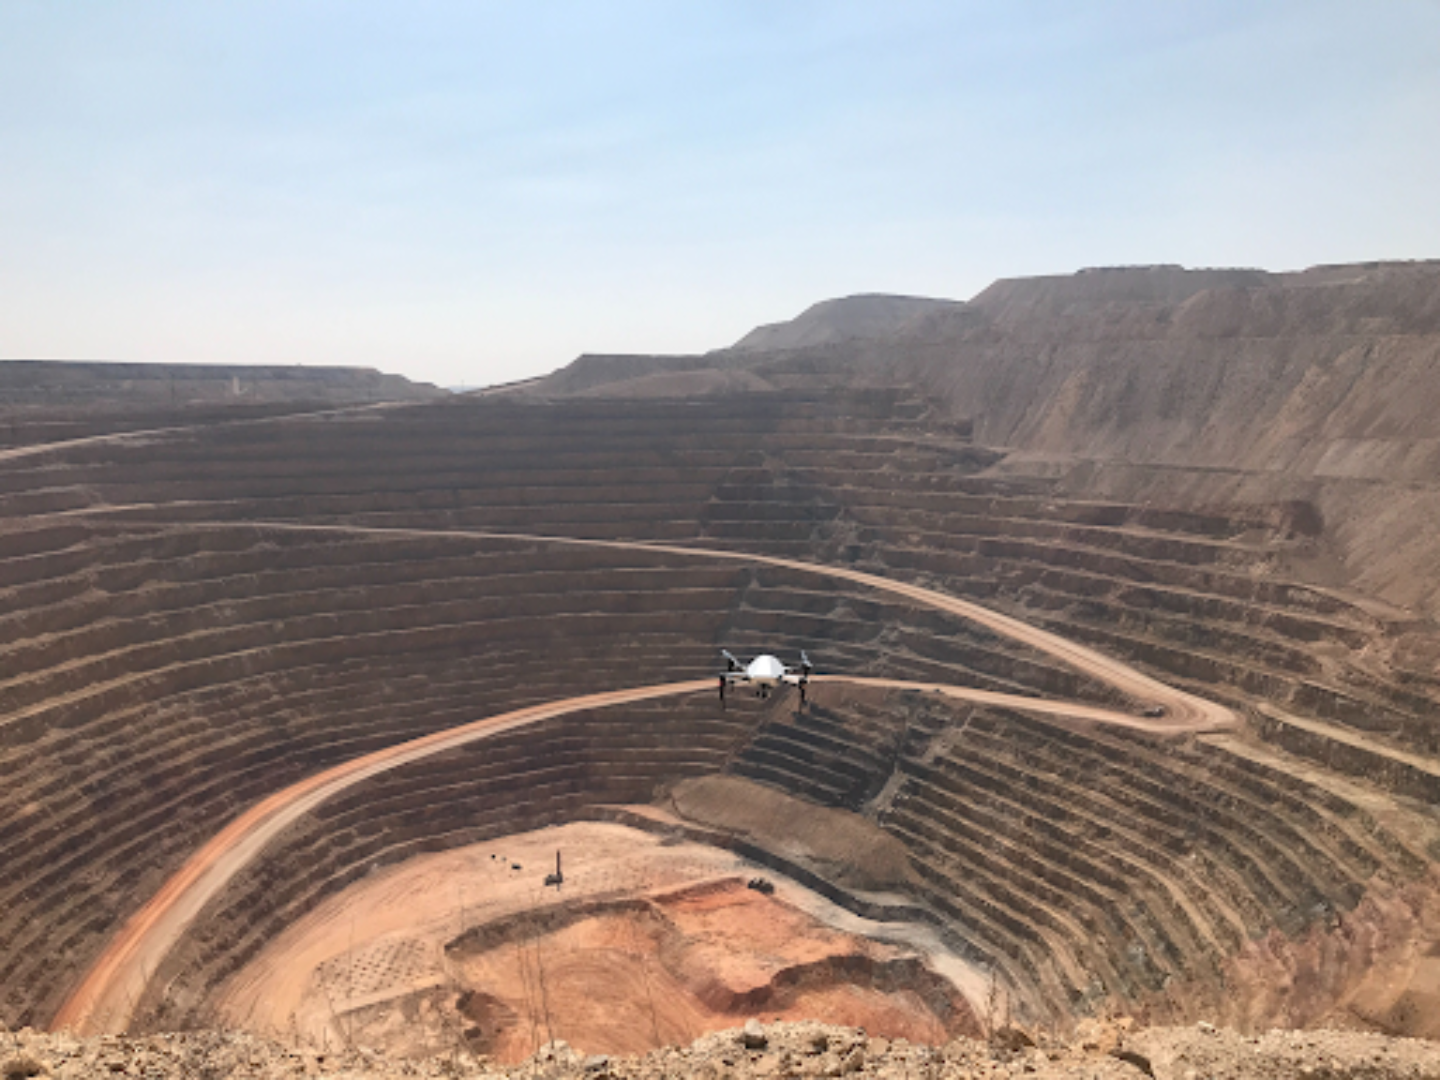 Skycatch Explore1 Drone at an open pit mine